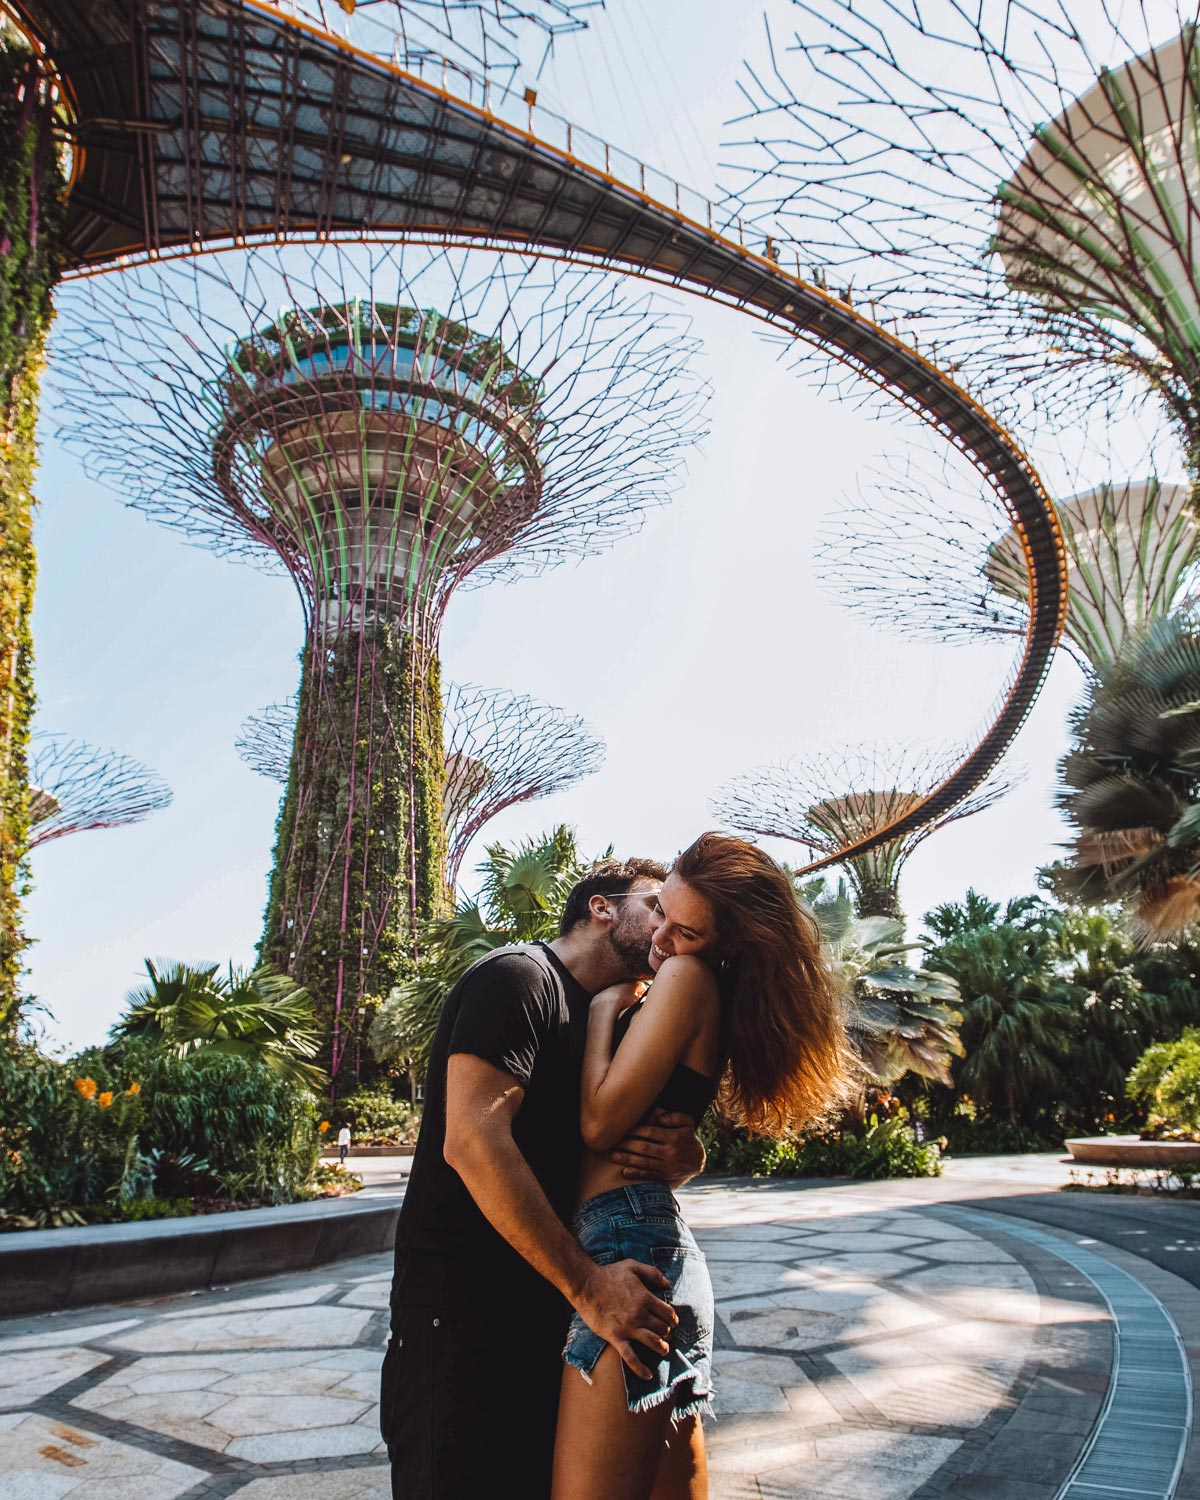 singapore-gardens-by-the-bay-park-2-day-itinerary